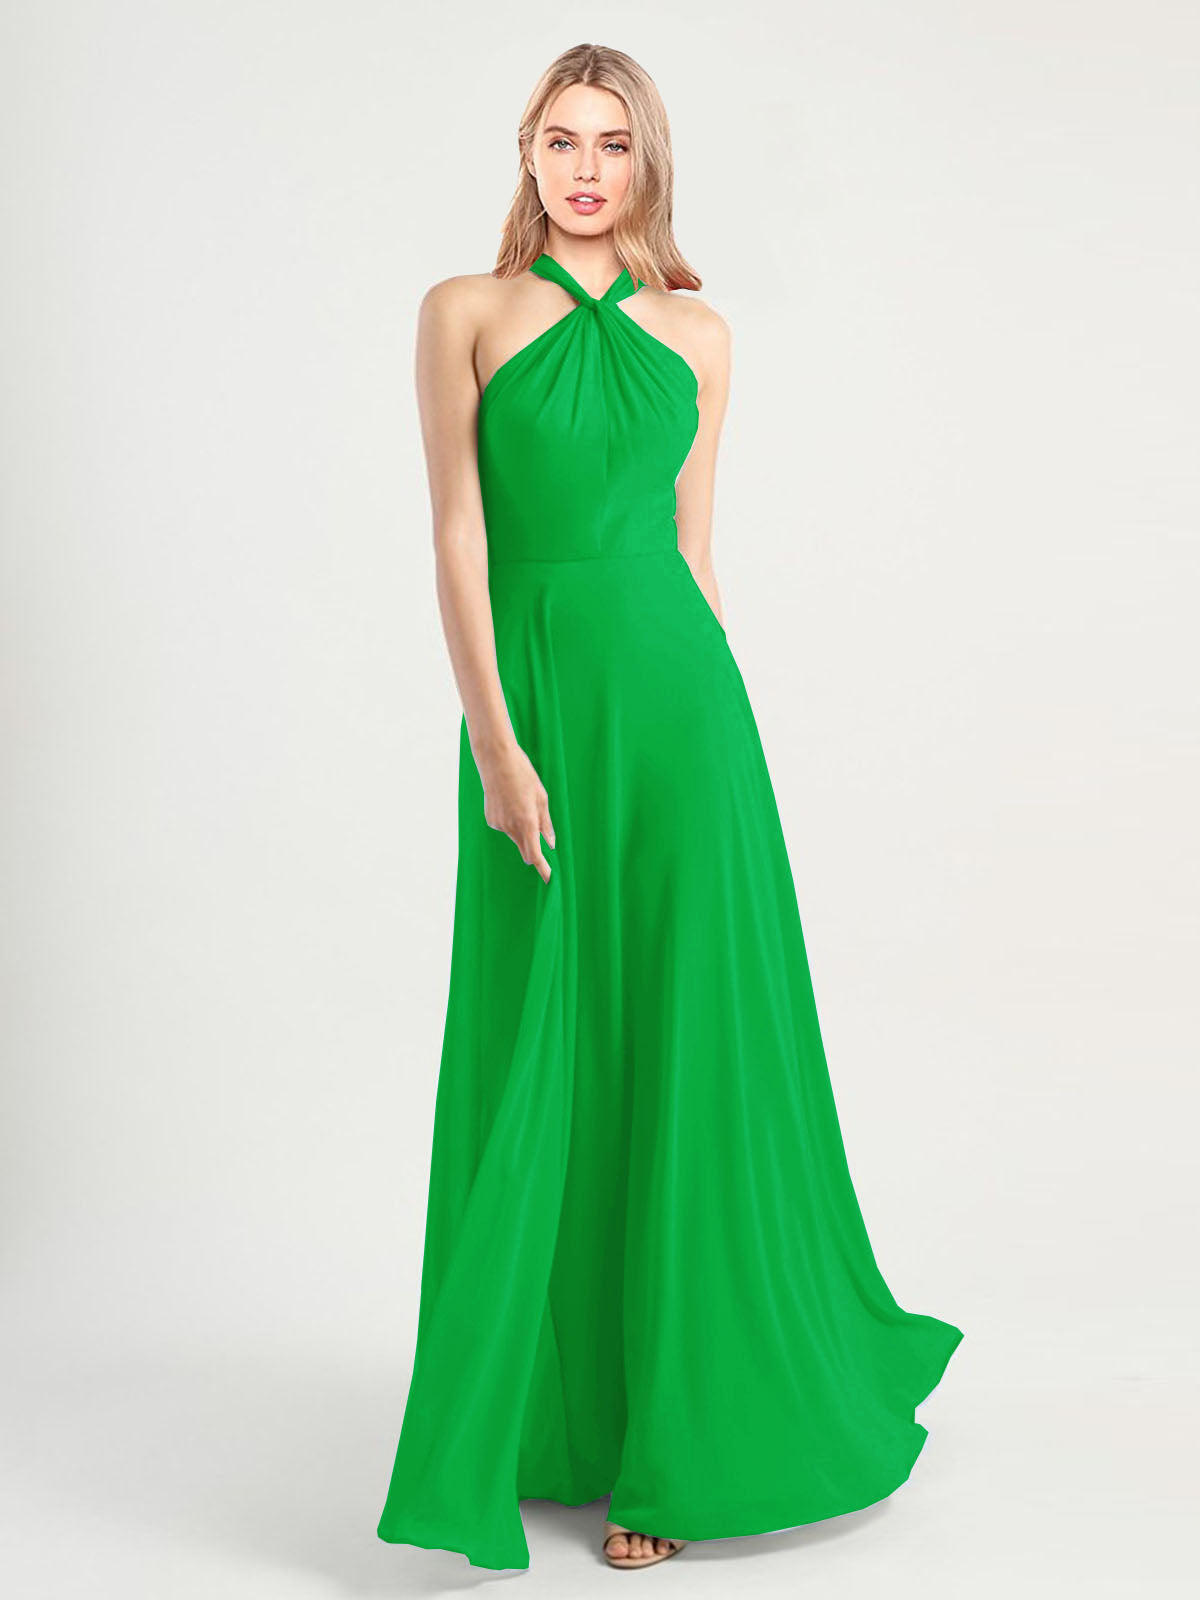 Long A-Line High Neck, Halter Sleeveless Green Chiffon Bridesmaid Dress Yoli